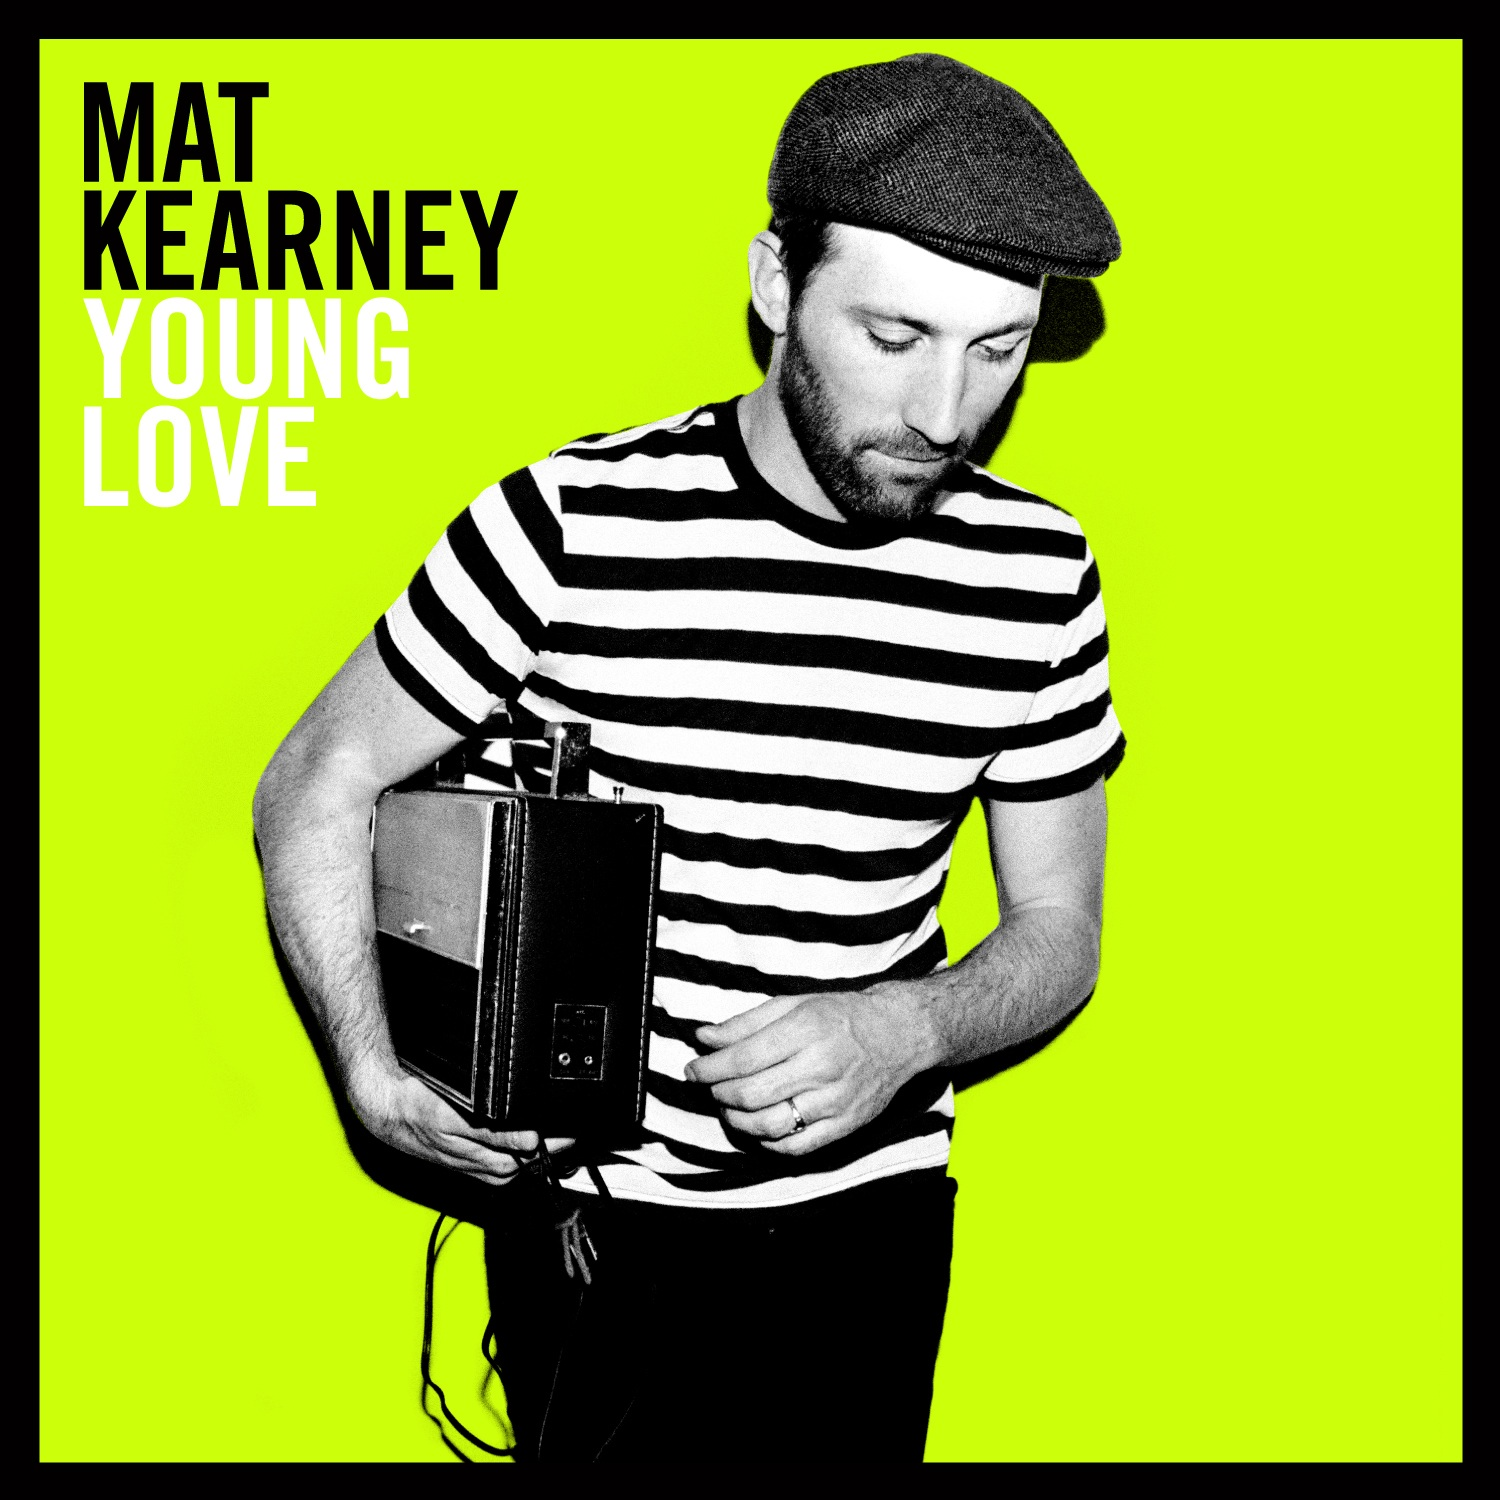 Review of the New Mat Kearney Album, Young Love